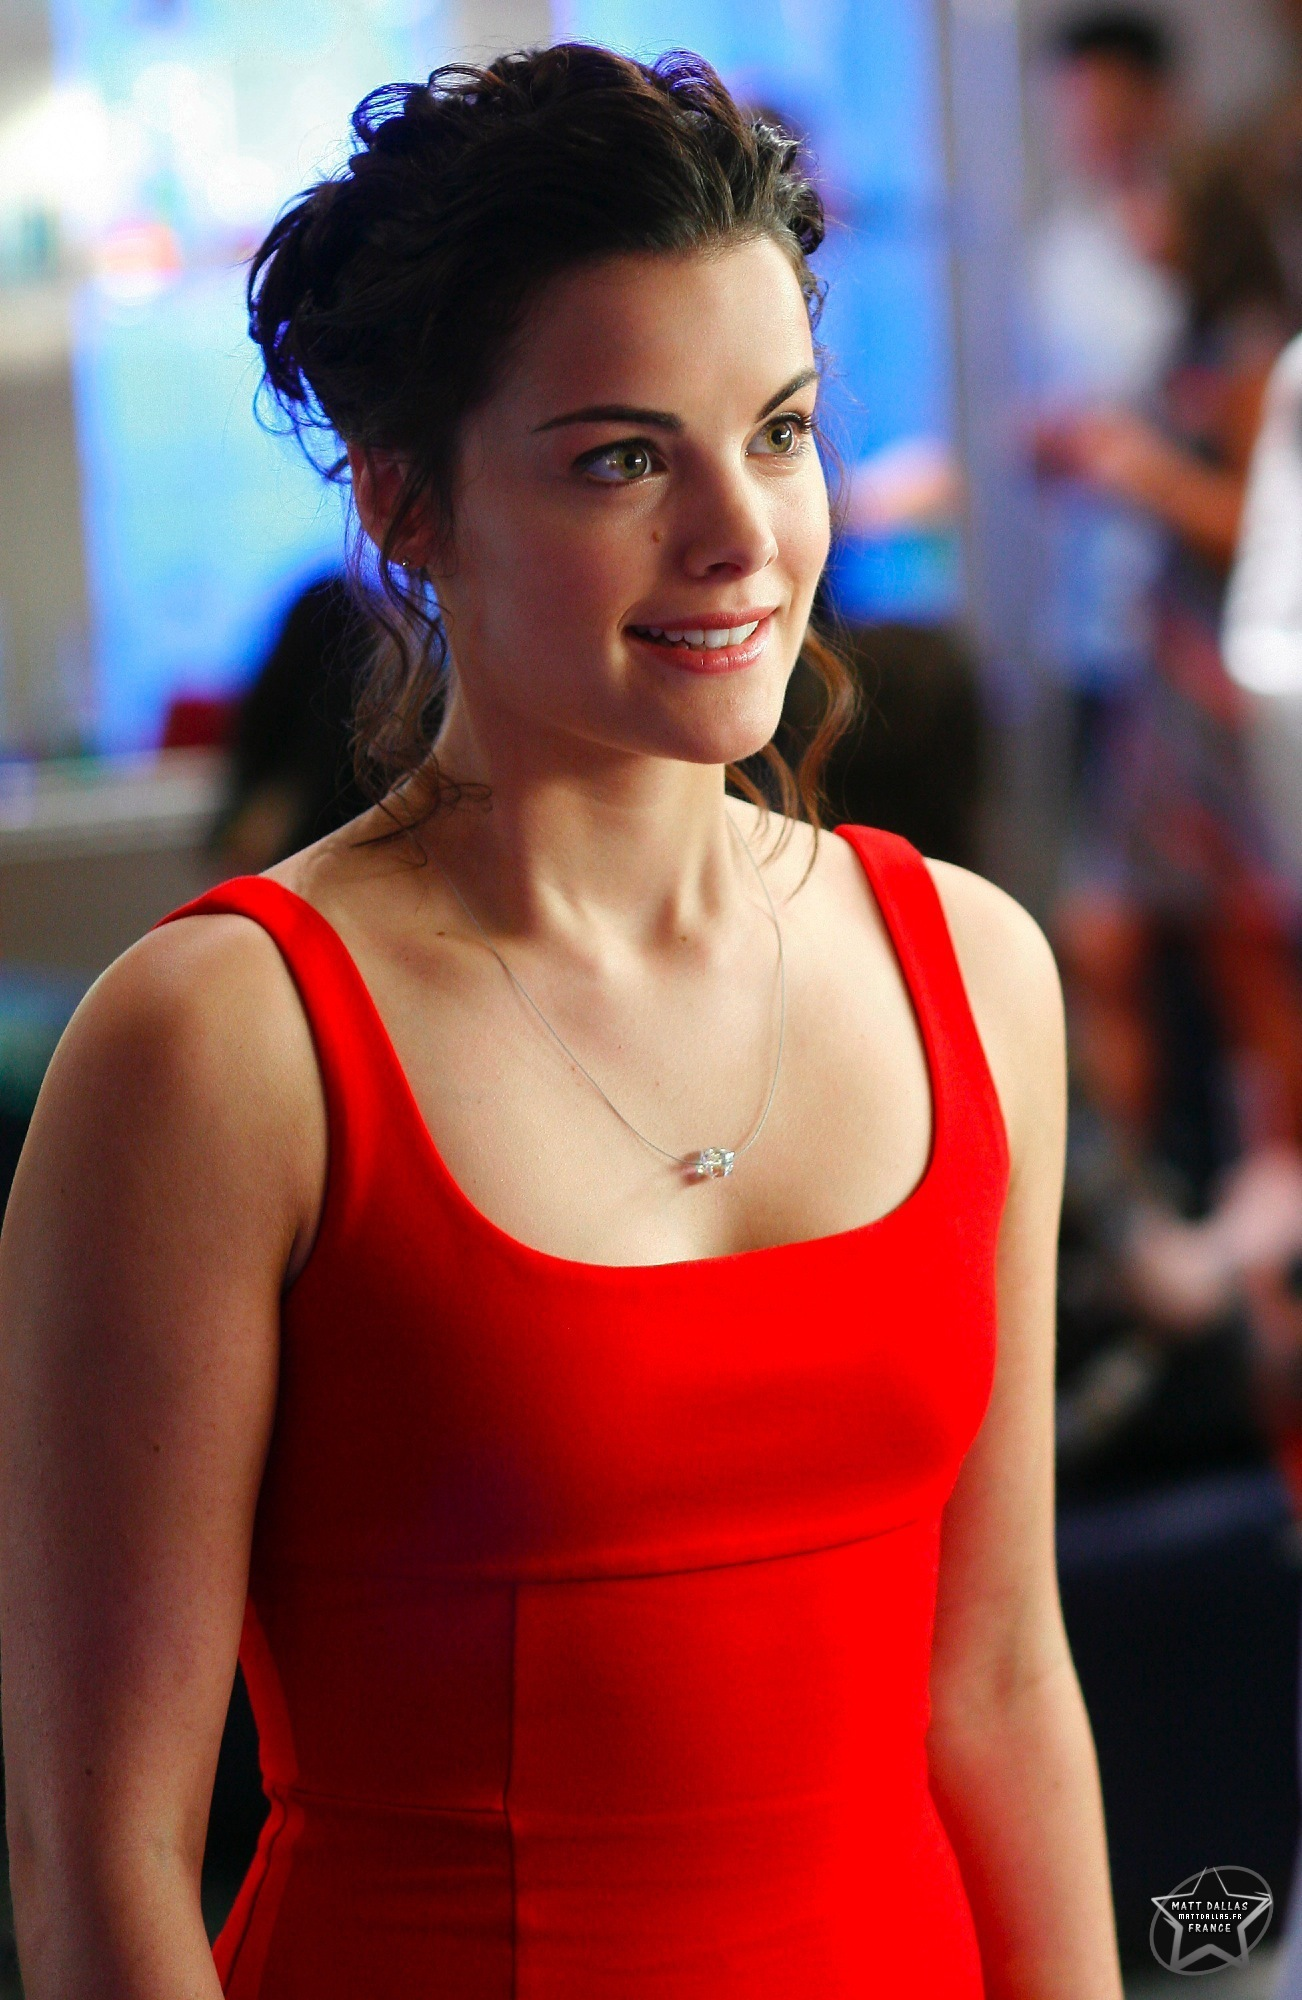 Download this Jaimie Alexander Images Fanpop picture